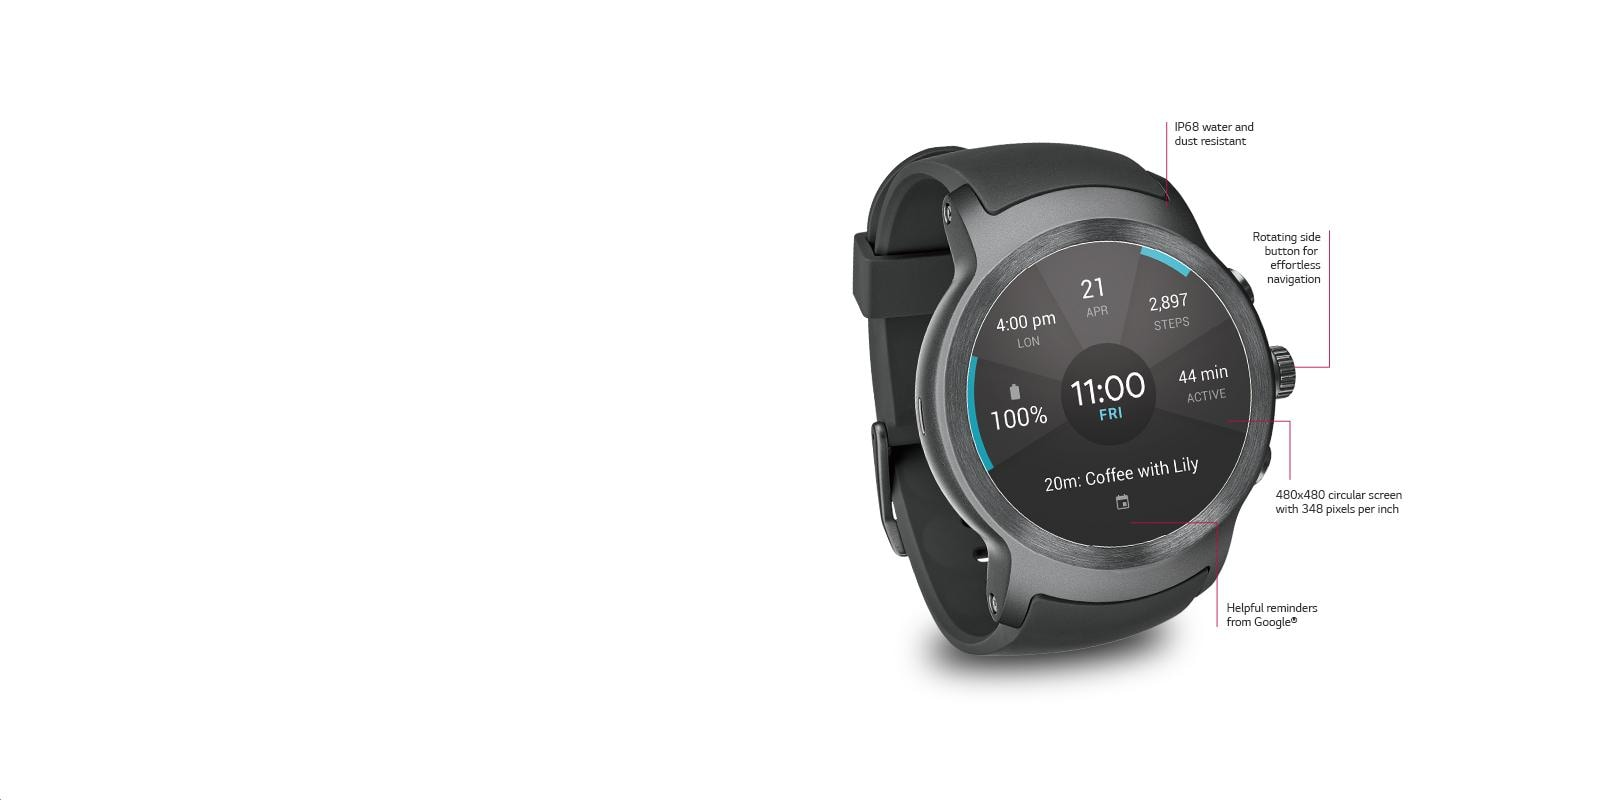 Lg Usa Smart Watch Sport For Att With Android Wear 20 2014 Ram 7 Pin Wire Diagram Dynamic Design